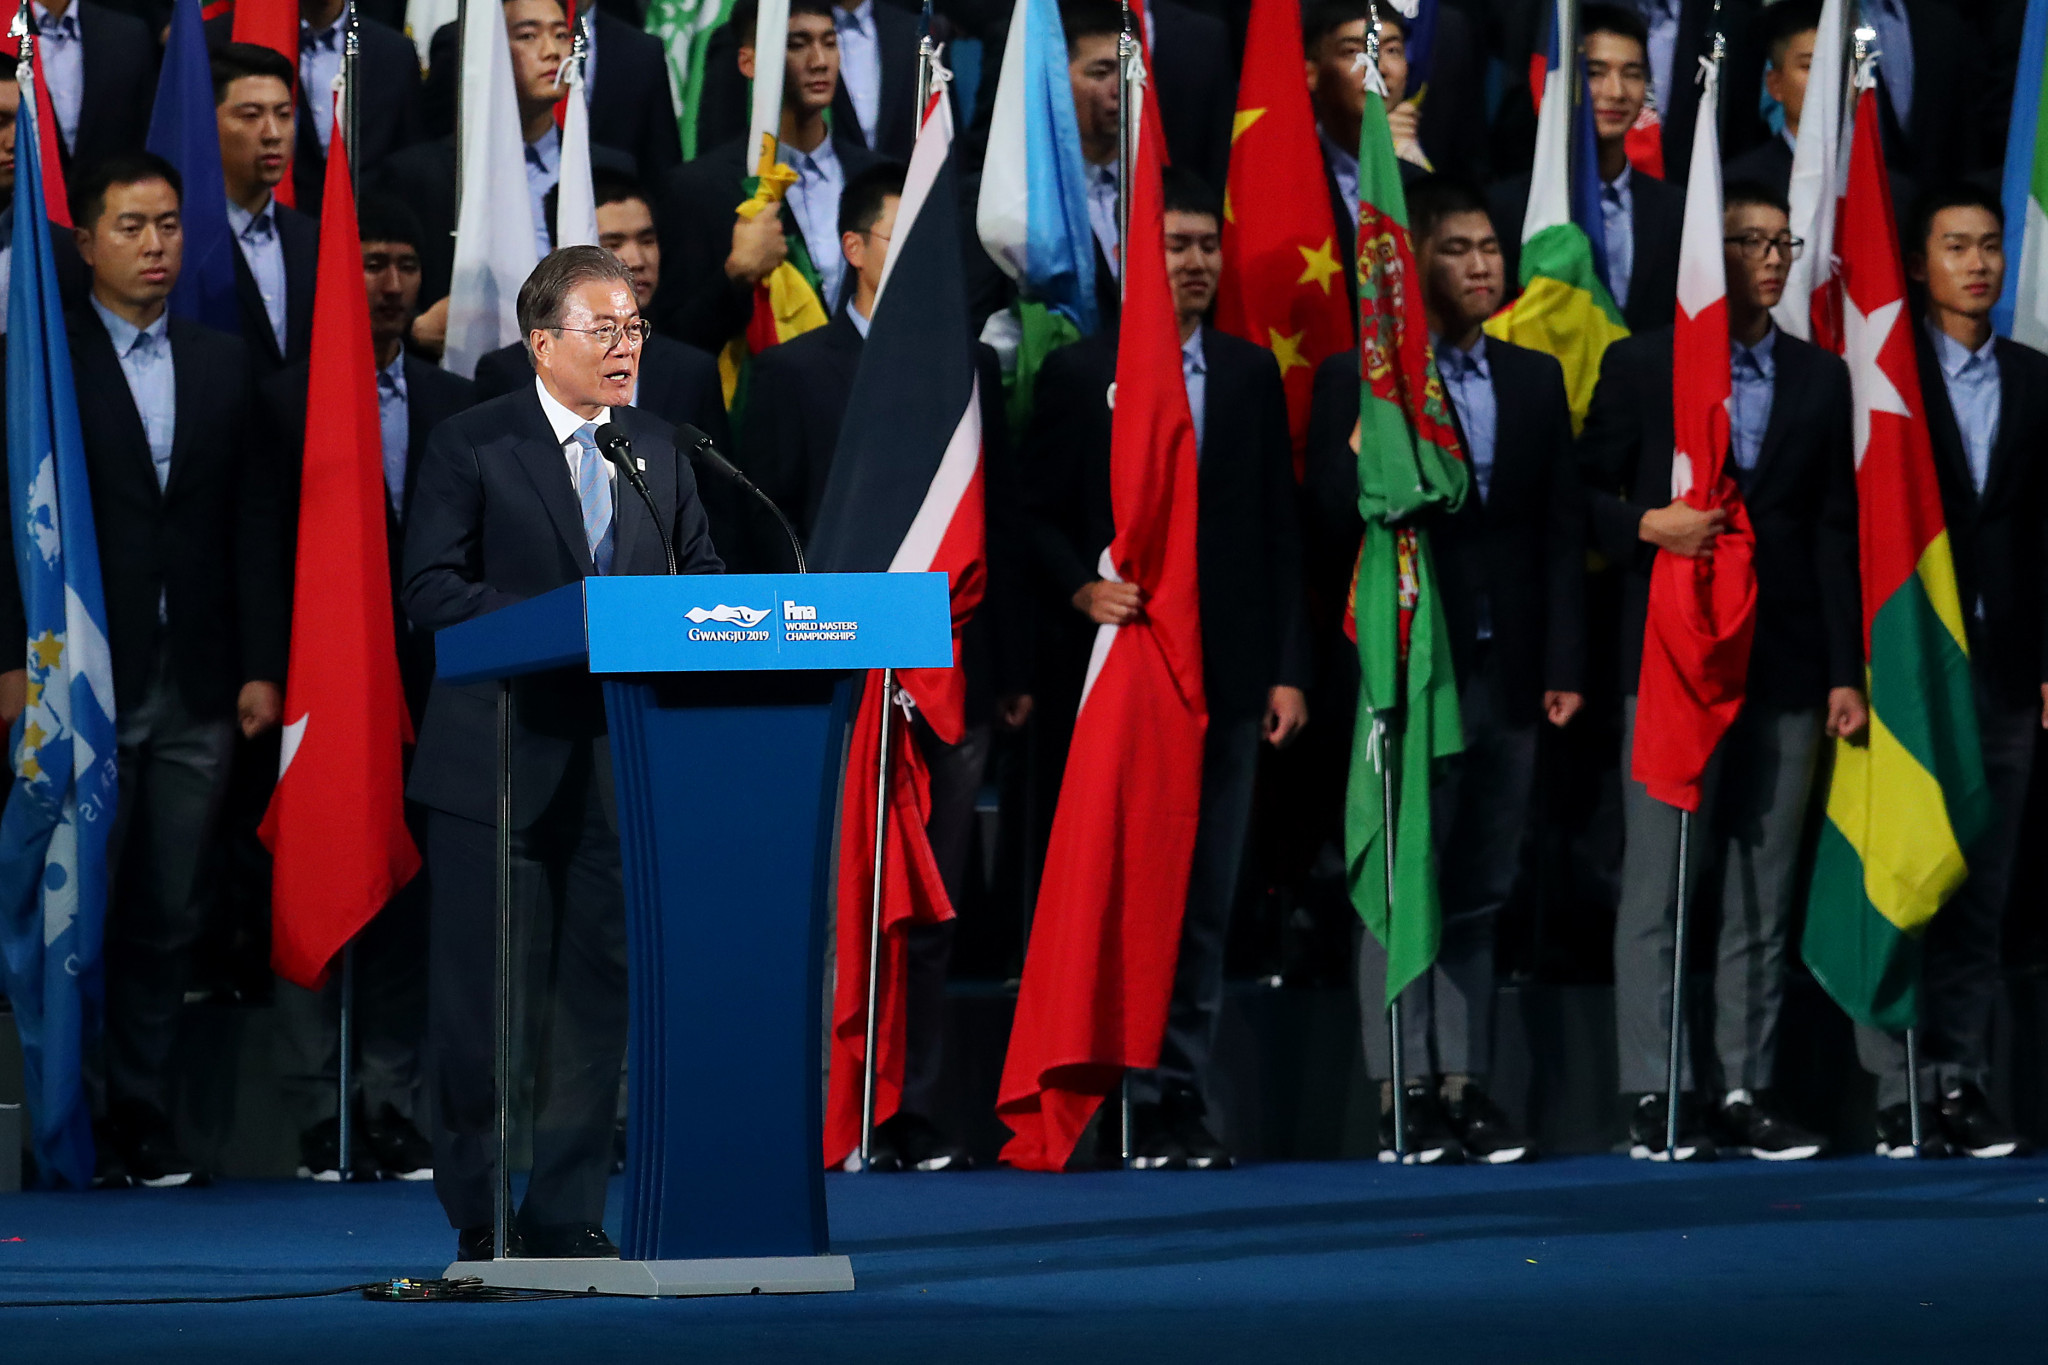 South Korean President Moon Jae-in officially opened the 2019 World Aquatics Championships ©Getty Images